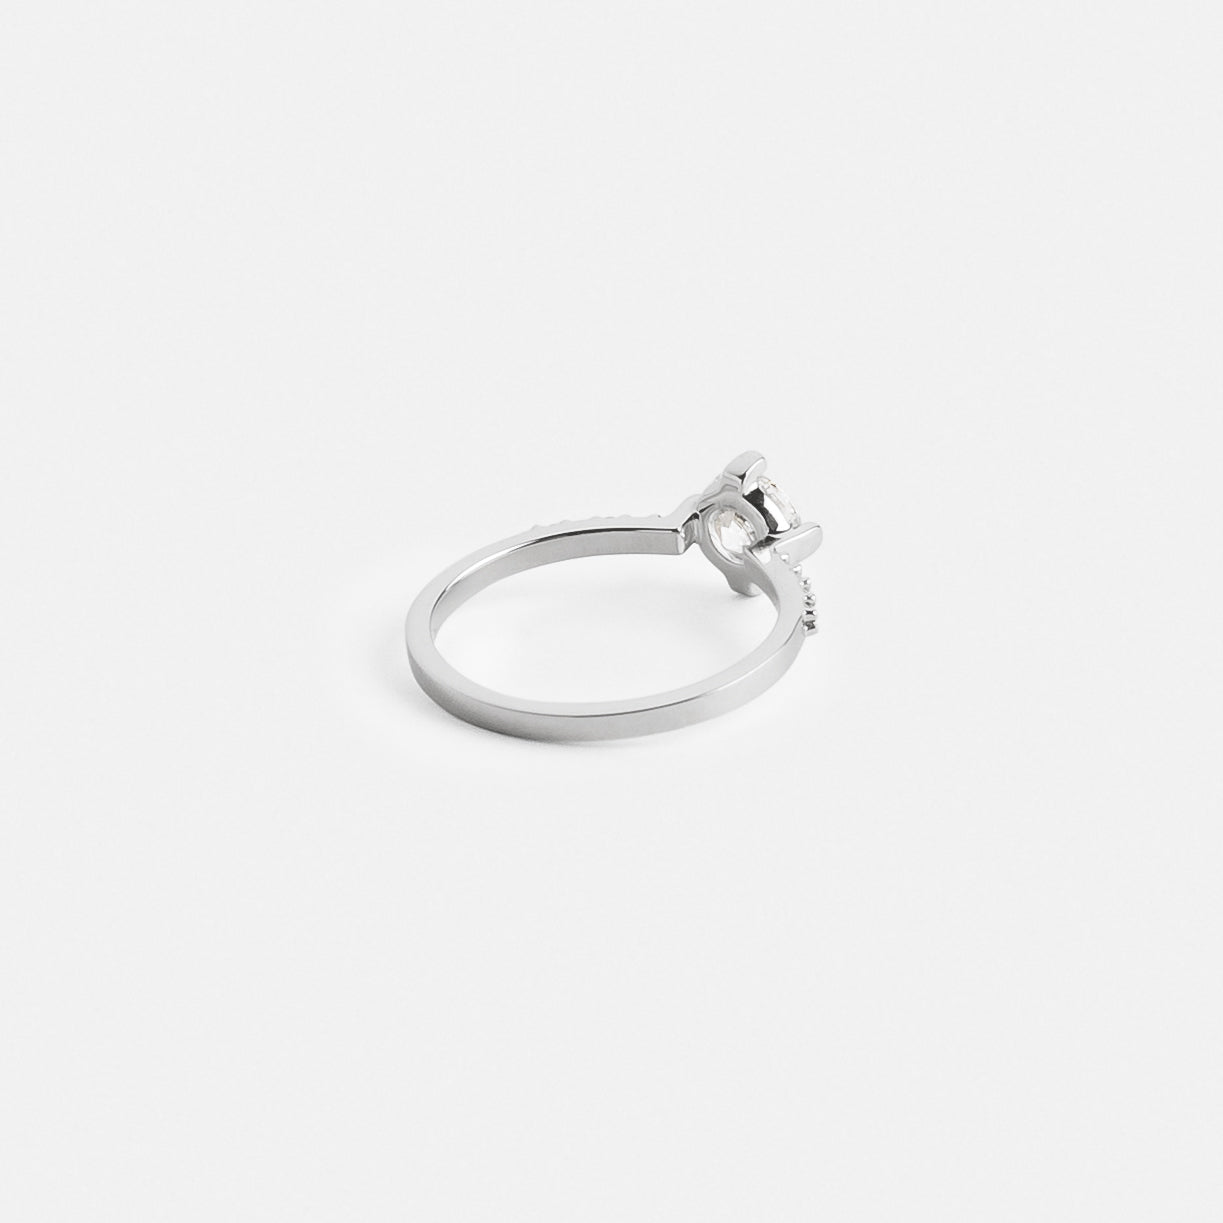 Imi Ring Sample